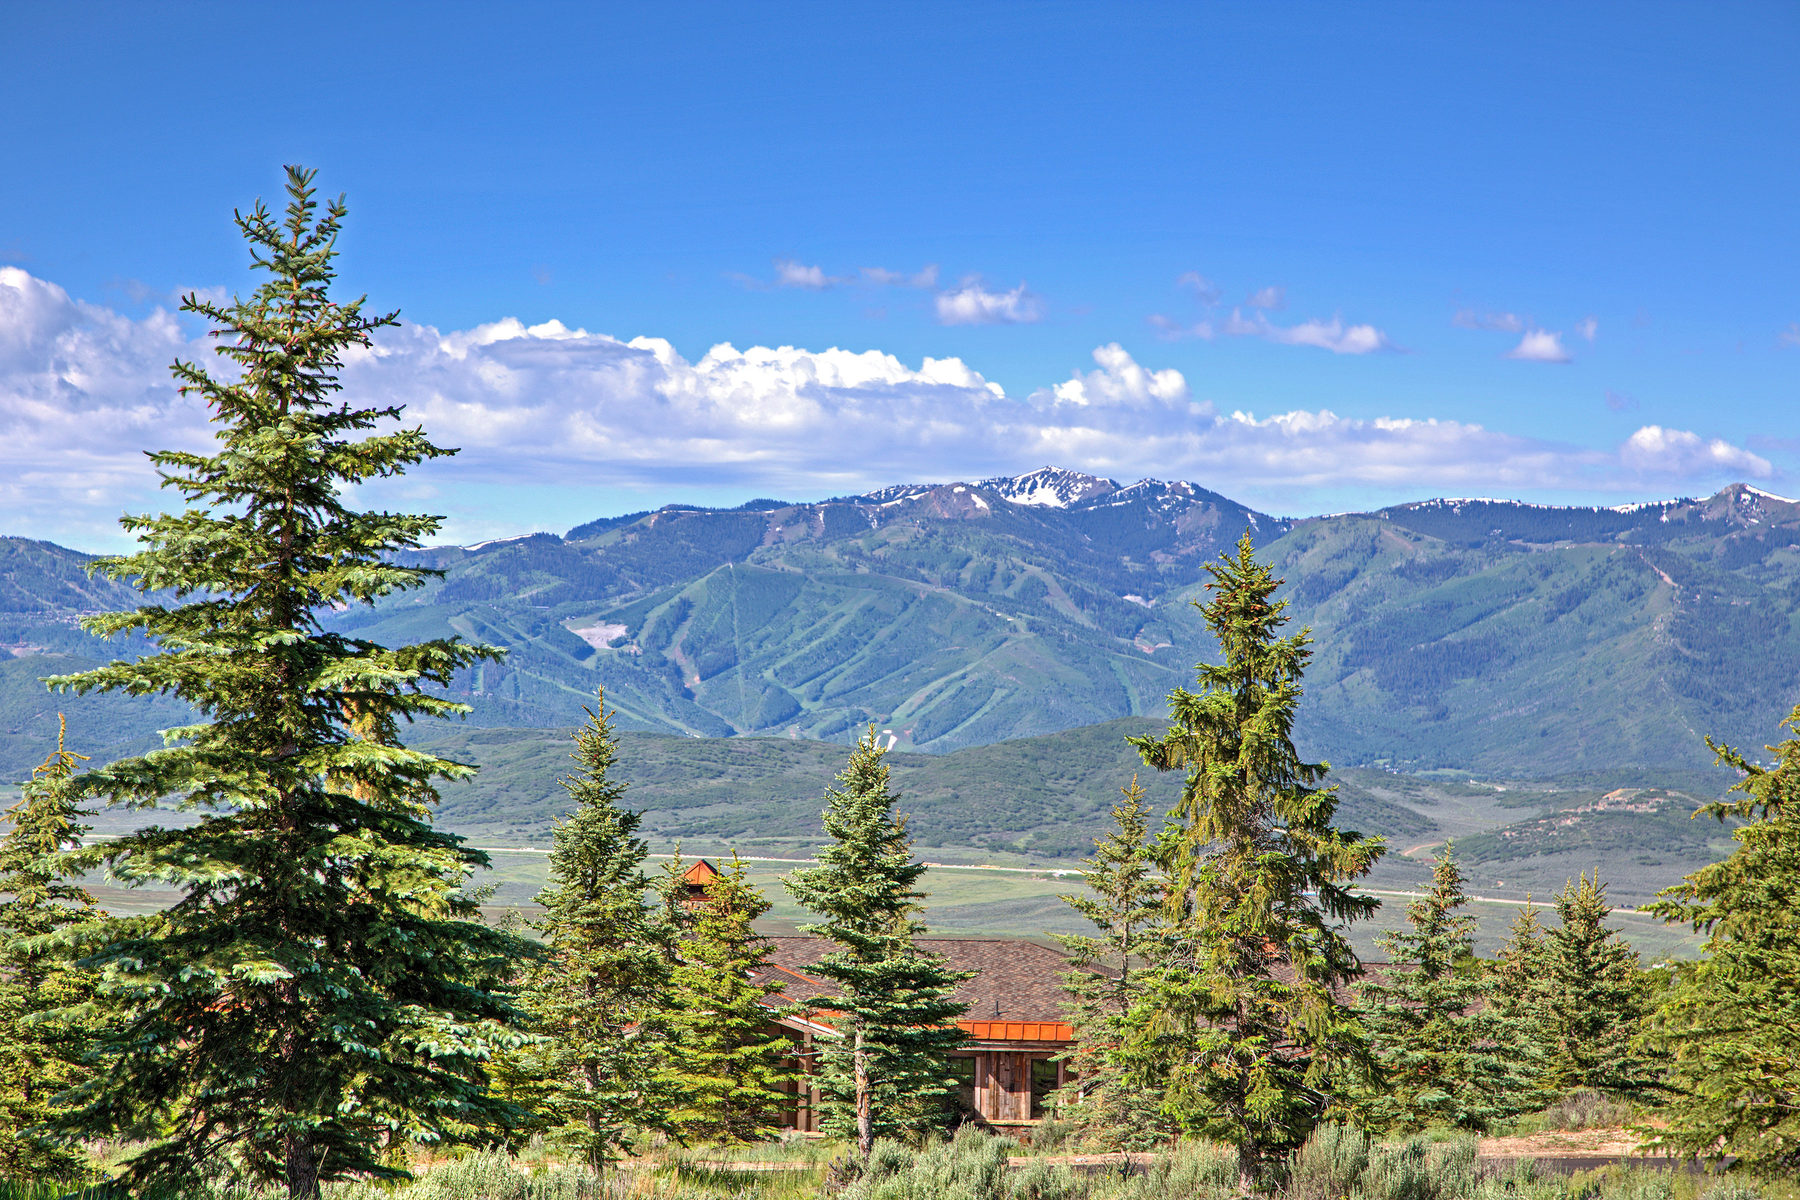 Land for Sale at Spectacular Promontory View Lot 8774 Last Spike Ln Lot 59 Park City, Utah, 84098 United States